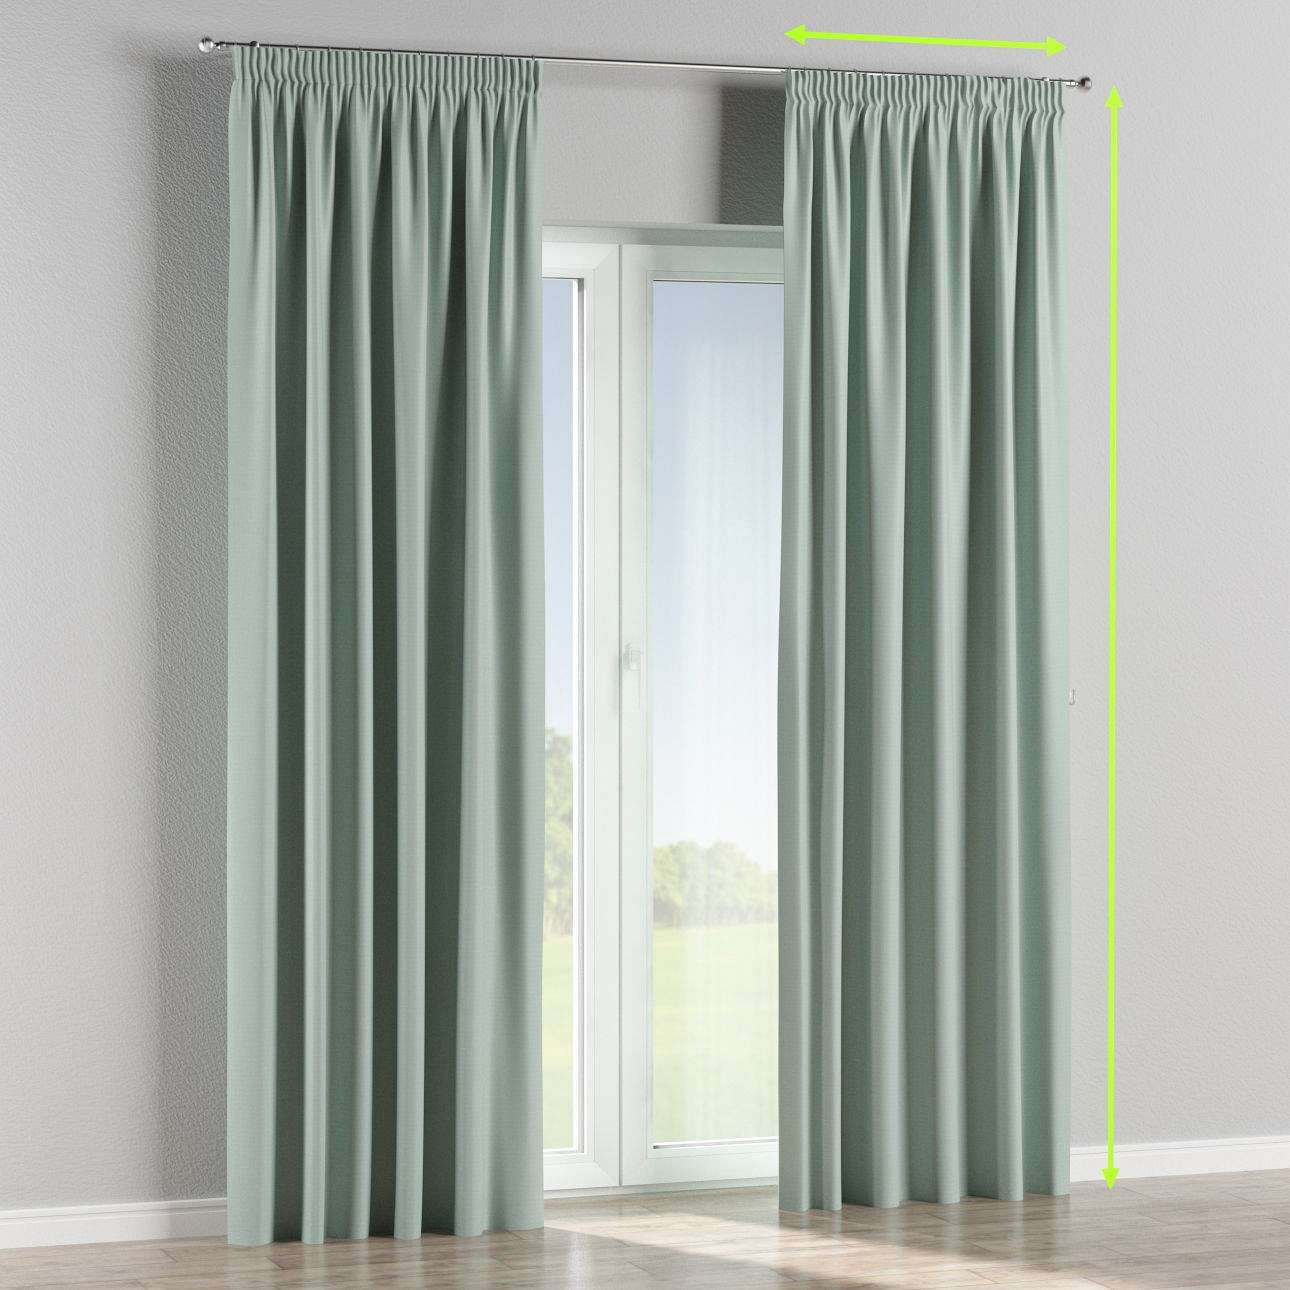 Pencil pleat curtain in collection Blackout, fabric: 269-61